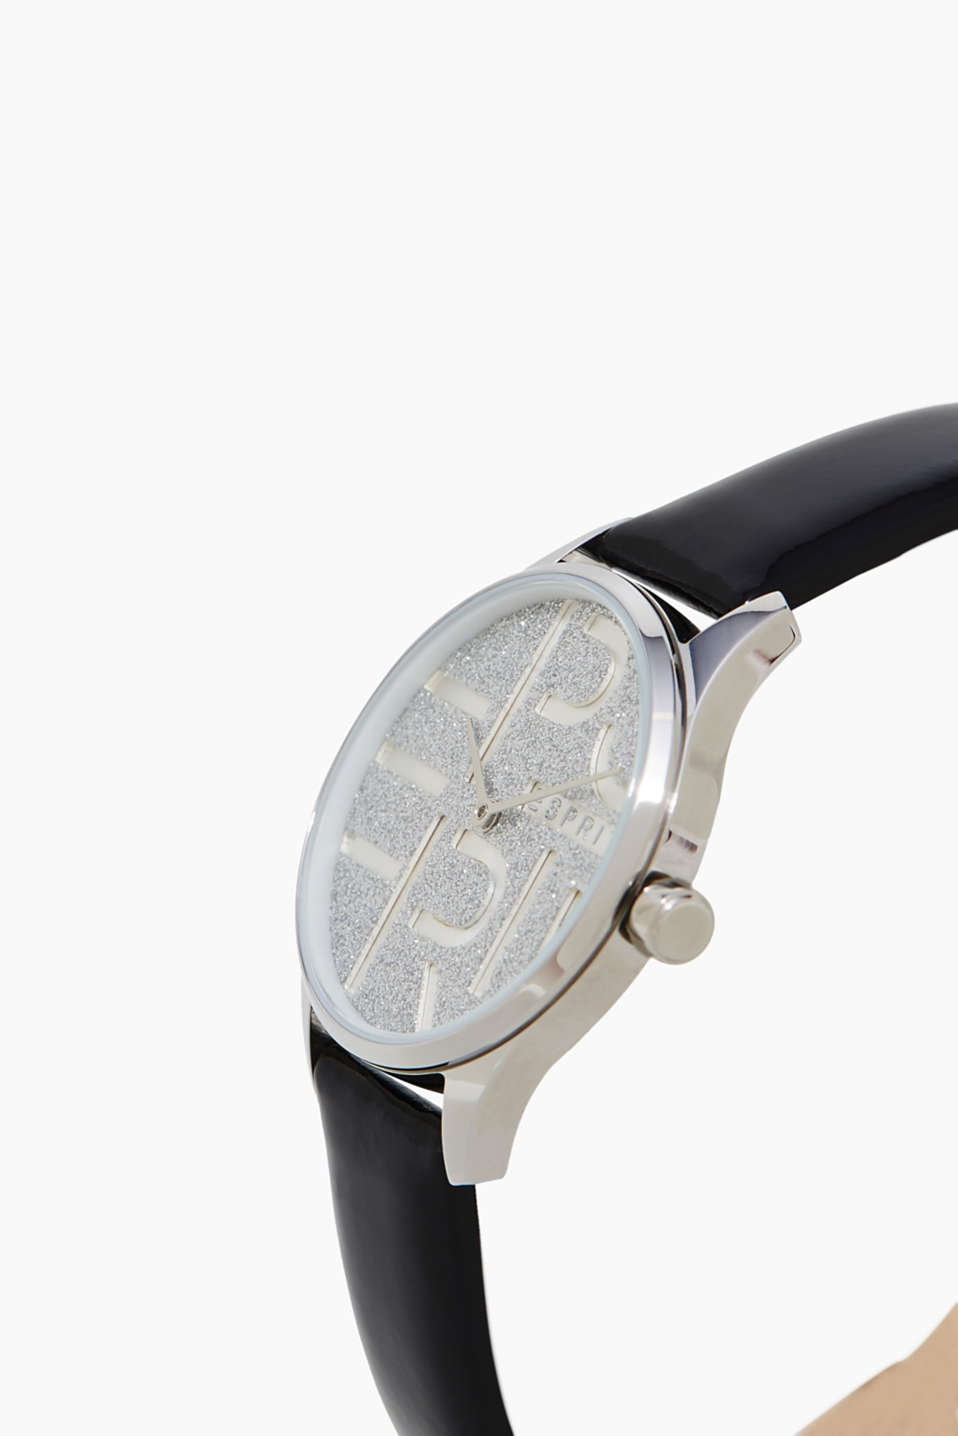 Stainless steel watch with glittering dial